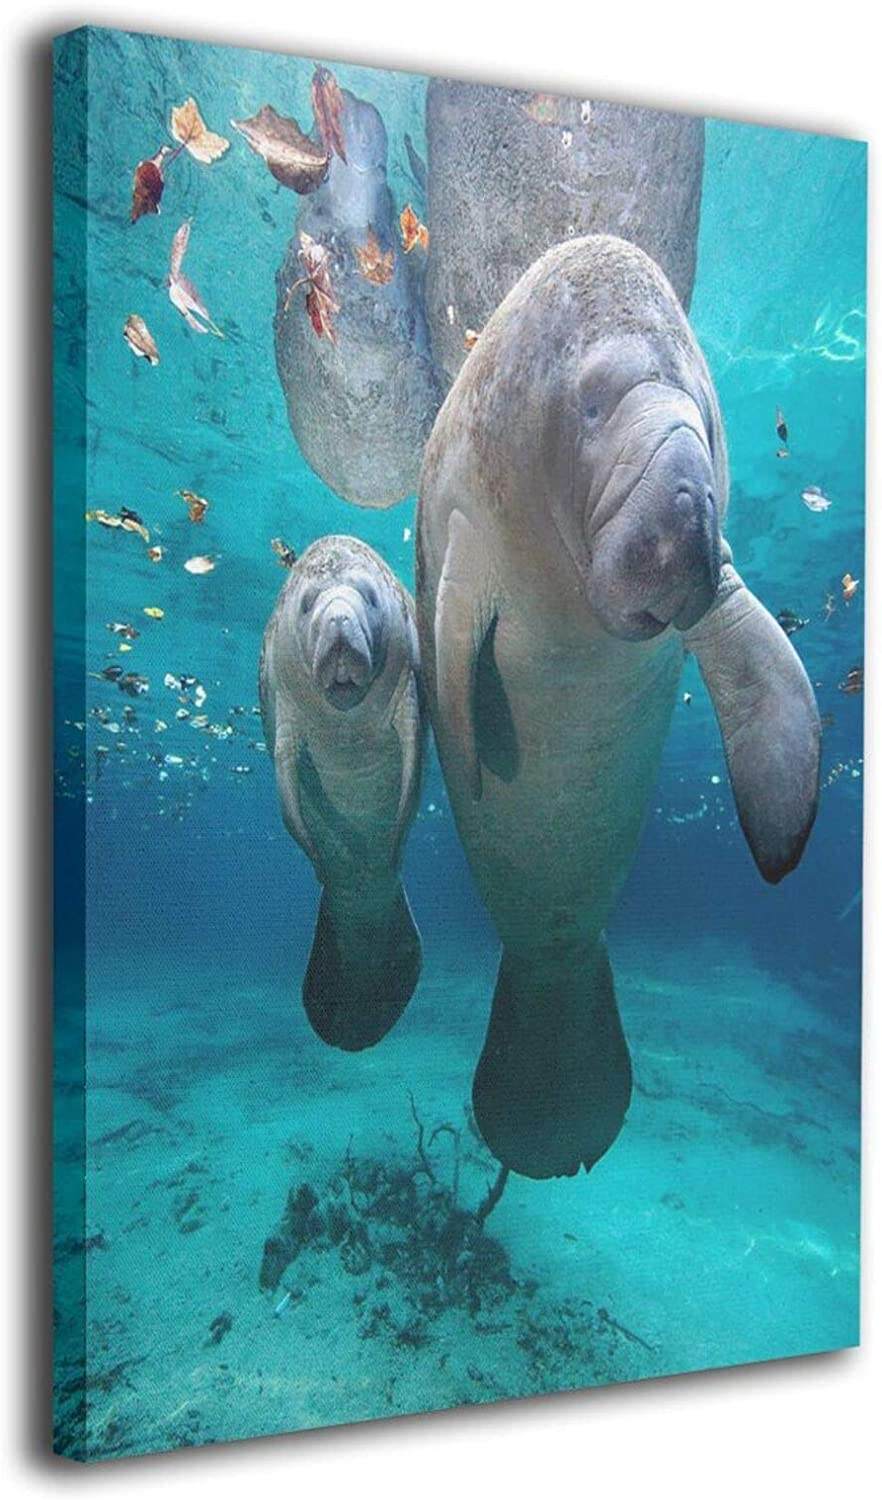 Under Sea Manatee Family Canvas Prints Wall Art Paintings Durable Bedroom Wall Decor Creative Poster Picture Artwork Fits for Office Bathroom Home Decoration